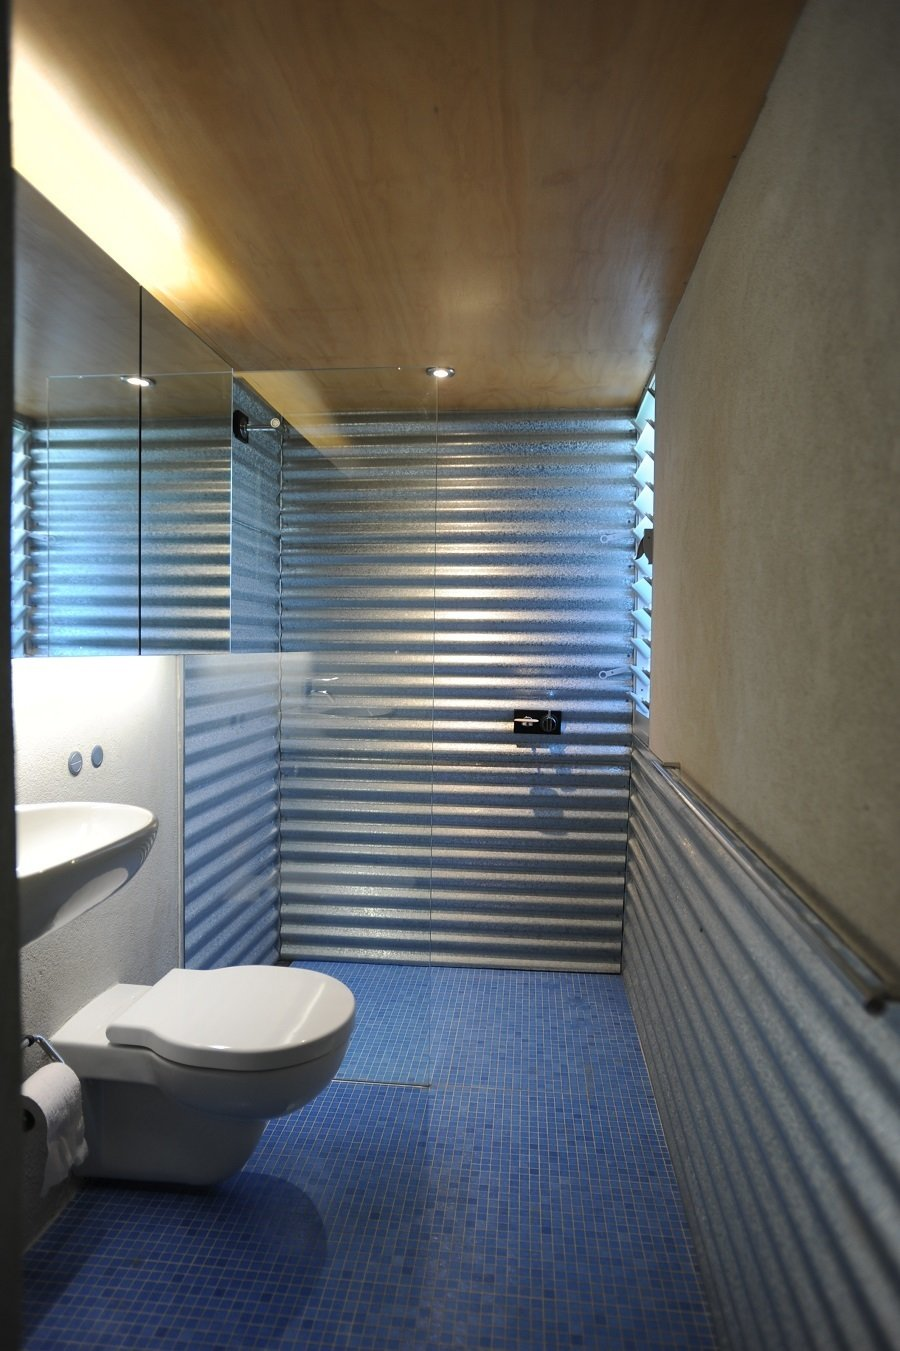 """The blue bathroom tiles were inspired by a """"Corbusian use of color,"""" according to the architect, and take advantage of the lowered floor to create a metaphorical step into a pool. The corrugated metal continues throughout, even wrapping around the walls of the shower.  Renovations from Compact Australian Home Clad in Steel and Concrete"""